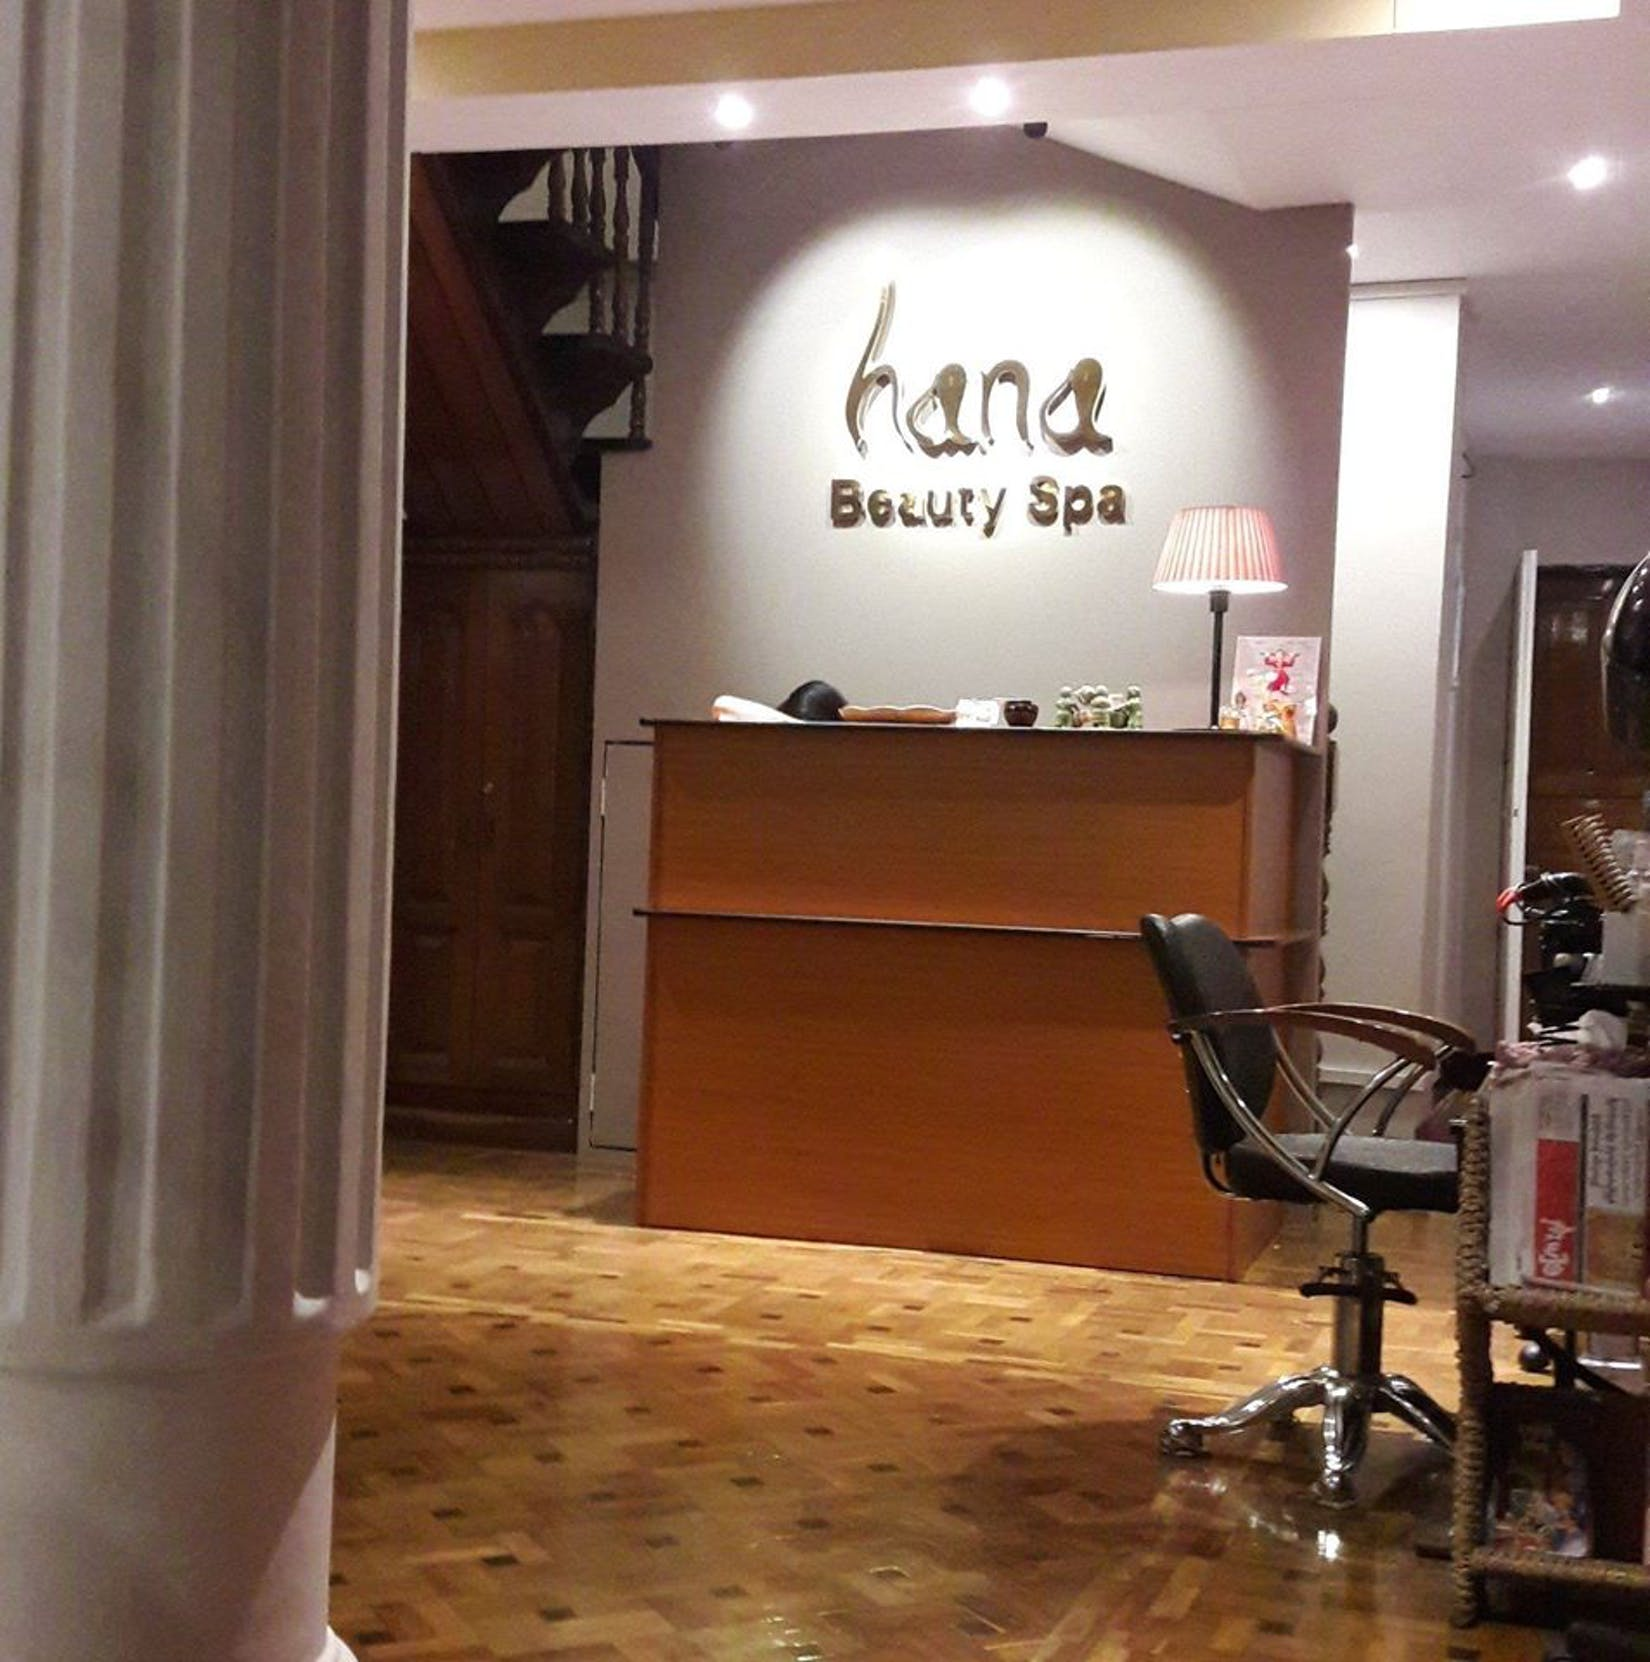 Hana beauty spa and japan restaurant | Beauty